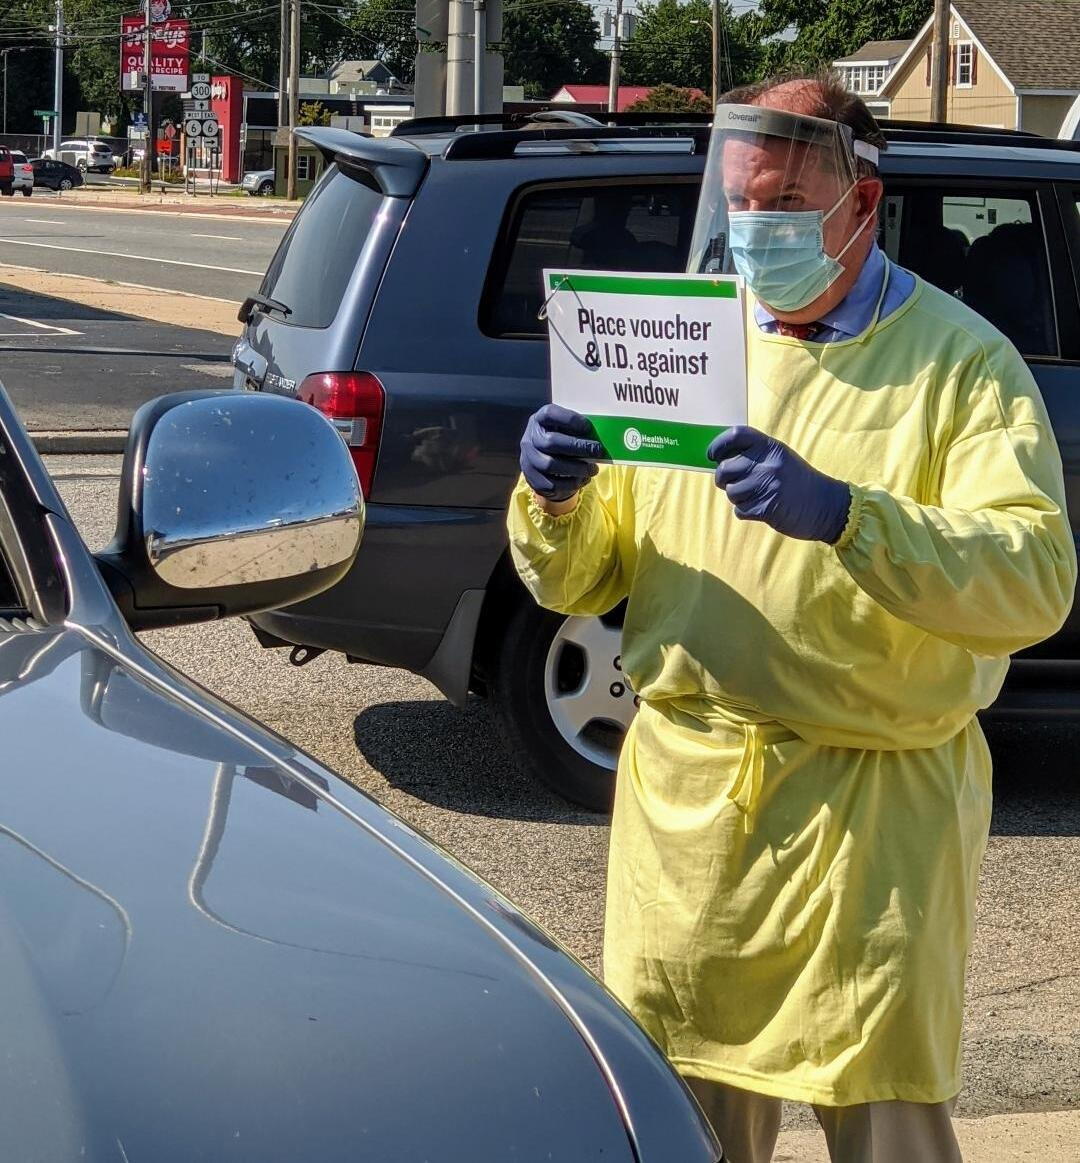 Kevin in the parking lot with a sign for a patient taking a COVID19 test